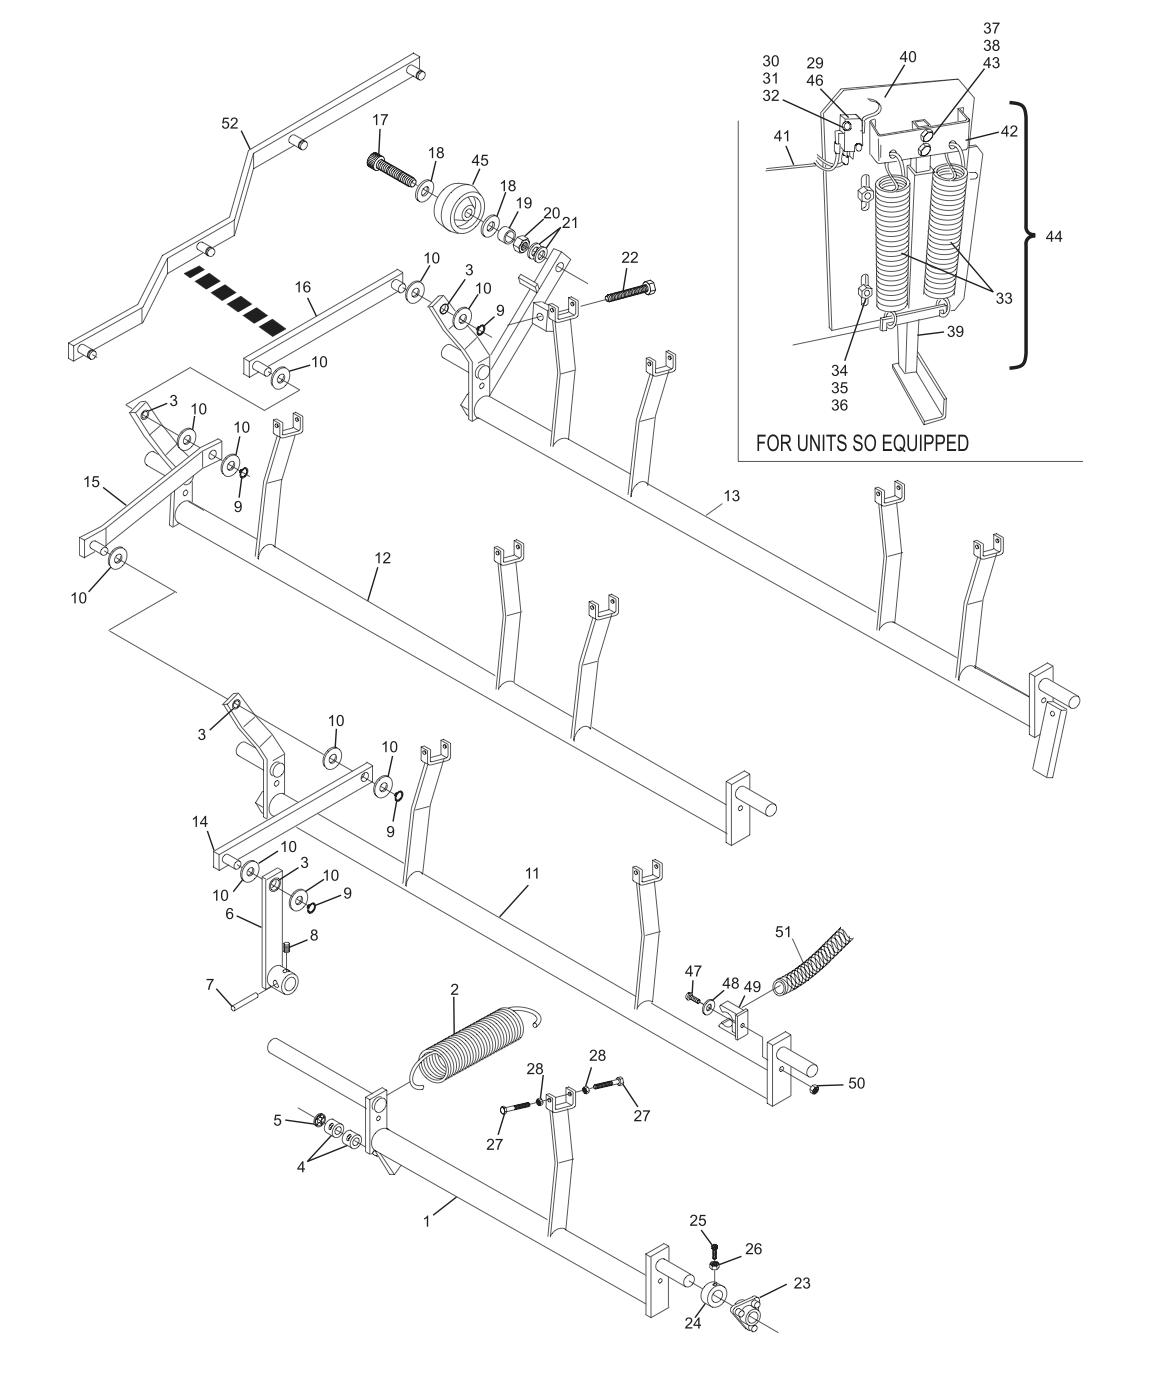 GS-10 - GS-98 Setting Table Swing Shafts